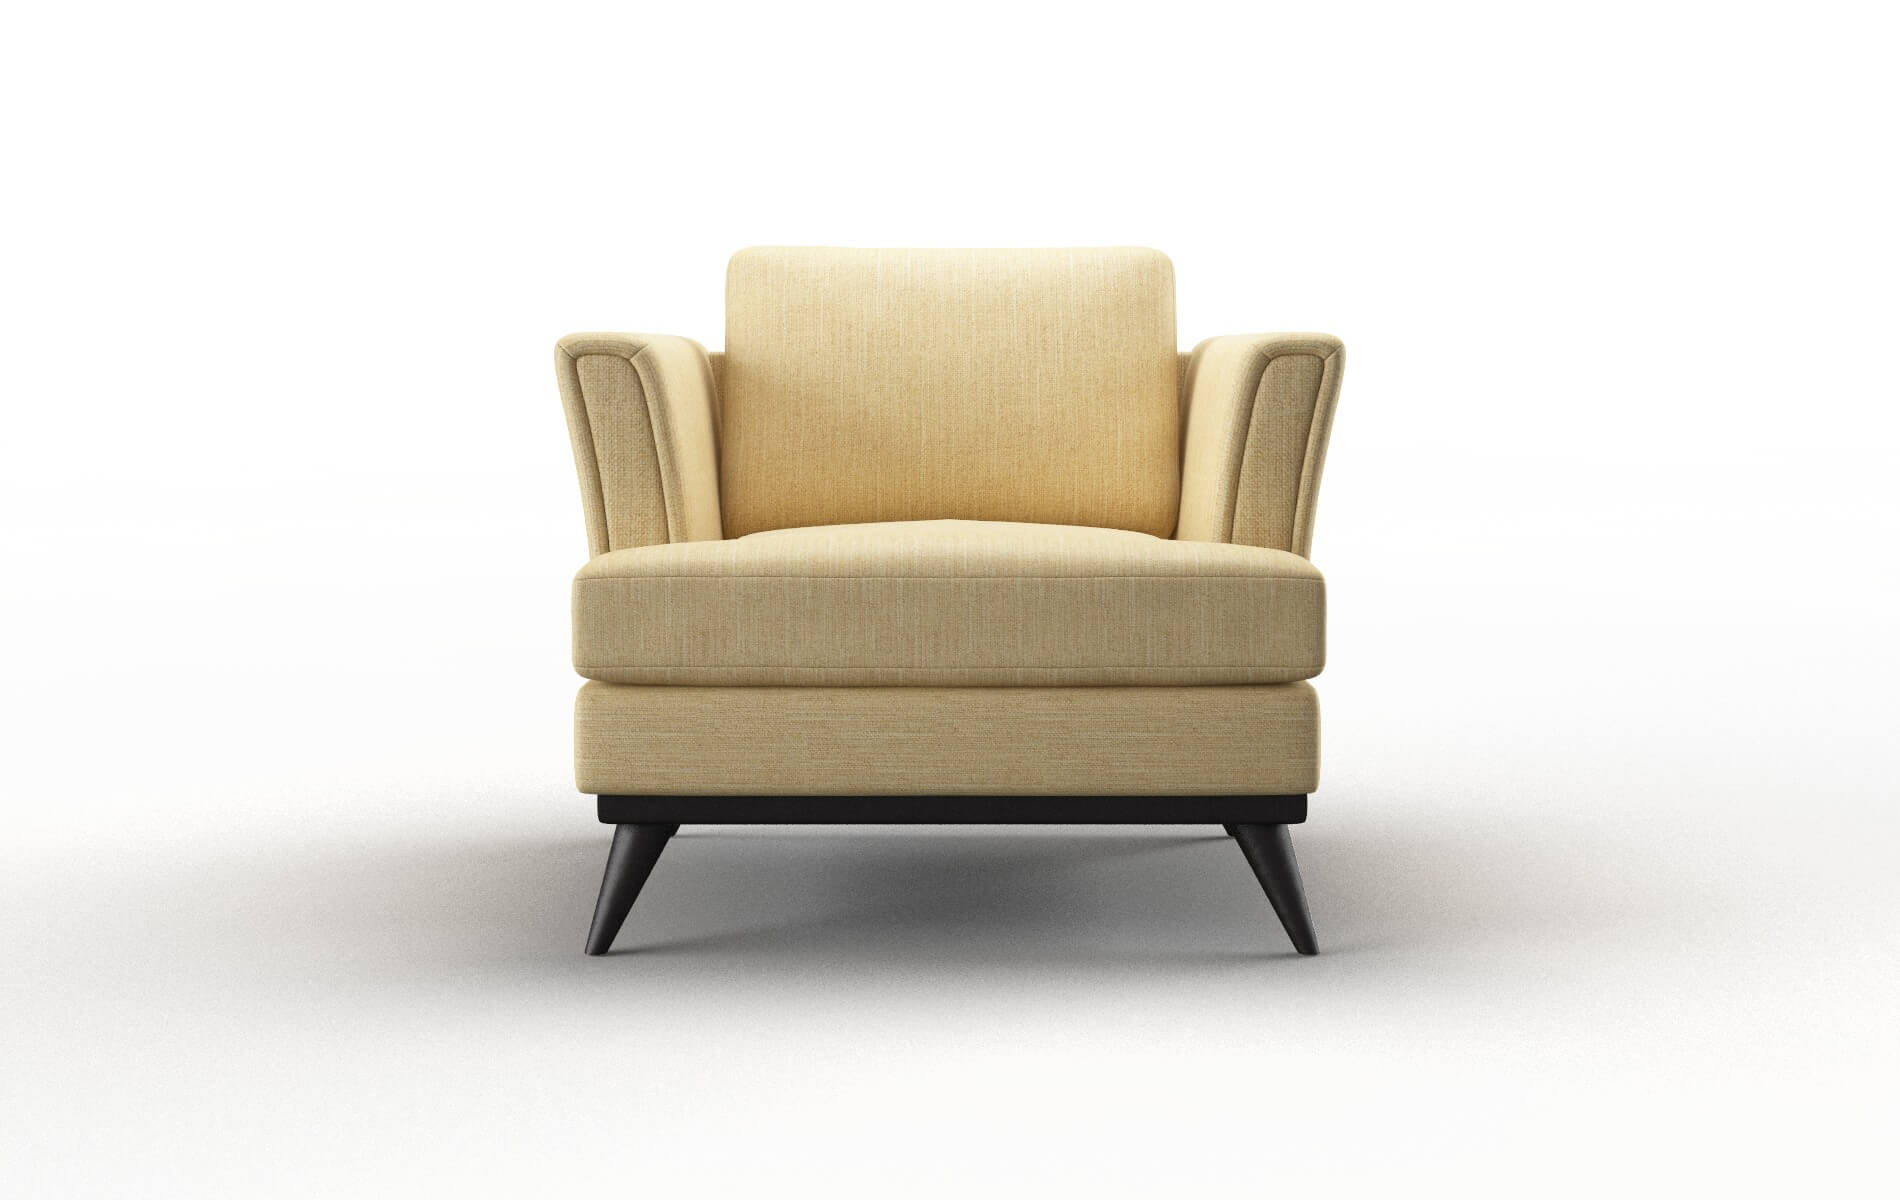 Antalya Malibu Maize Chair espresso legs 1